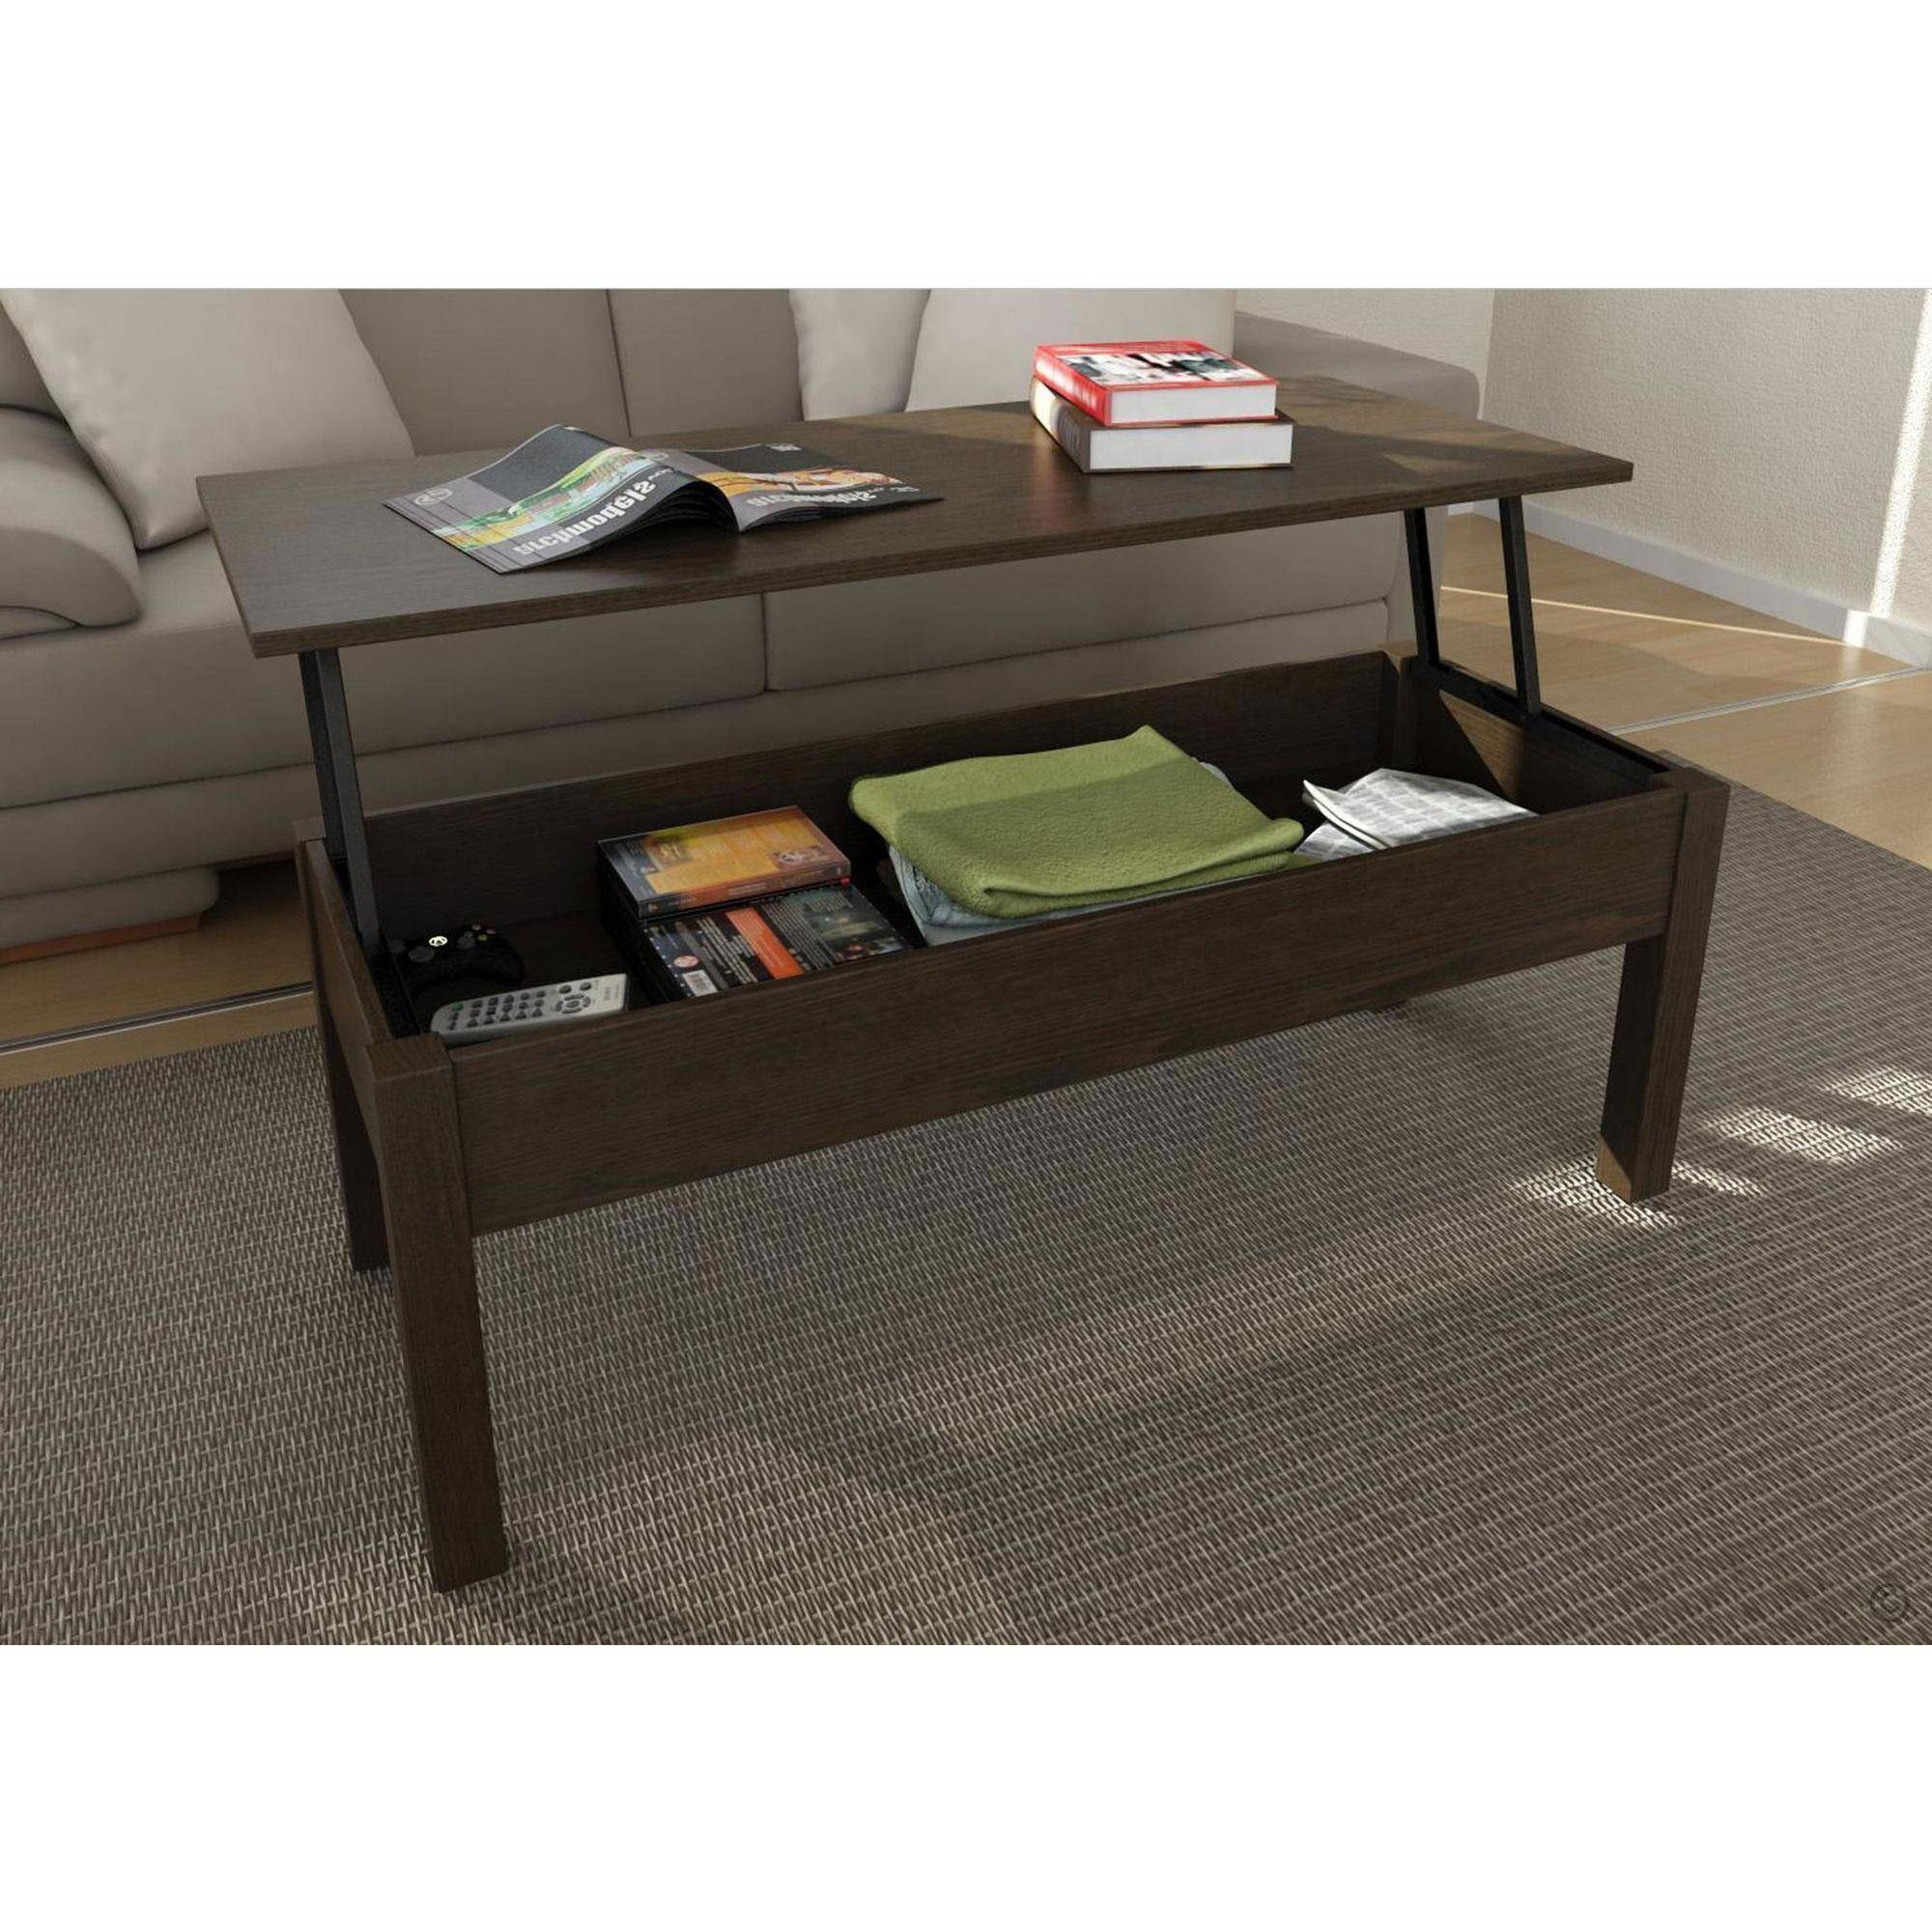 Mainstays Lift-Top Coffee Table, Multiple Colors - Walmart regarding Lifting Coffee Tables (Image 21 of 30)